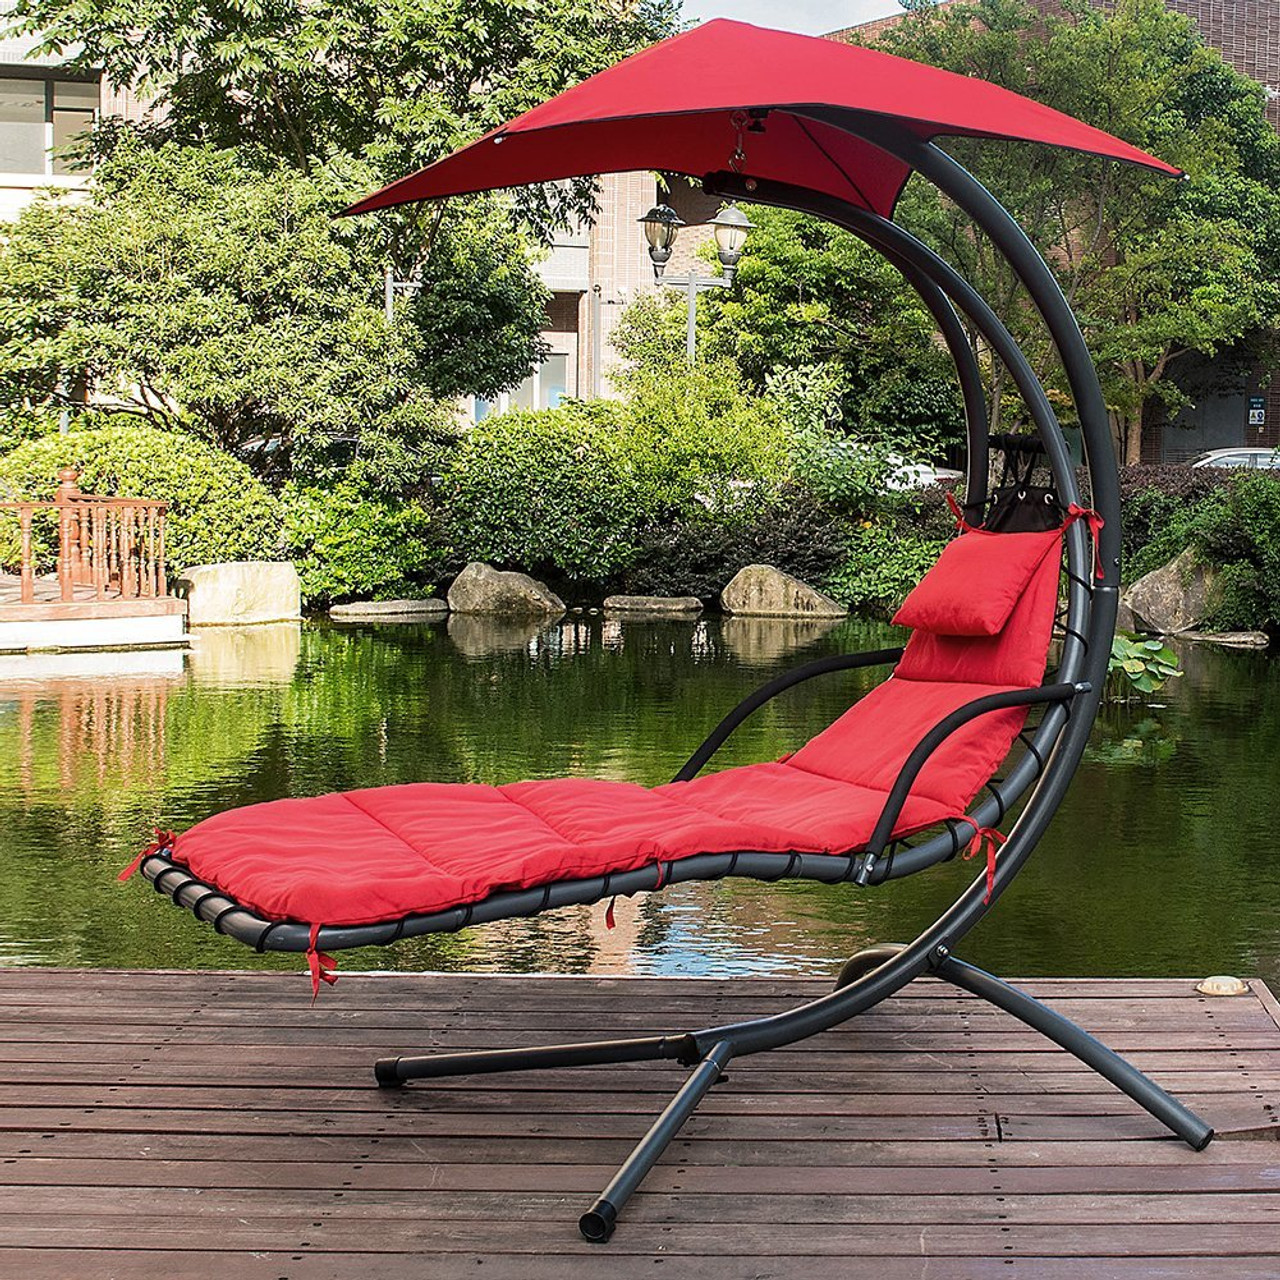 Lazy Daze Hammocks Dream Chair With Umbrella Hanging Chaise Lounge Chair  Arc Curved Hammock (Red